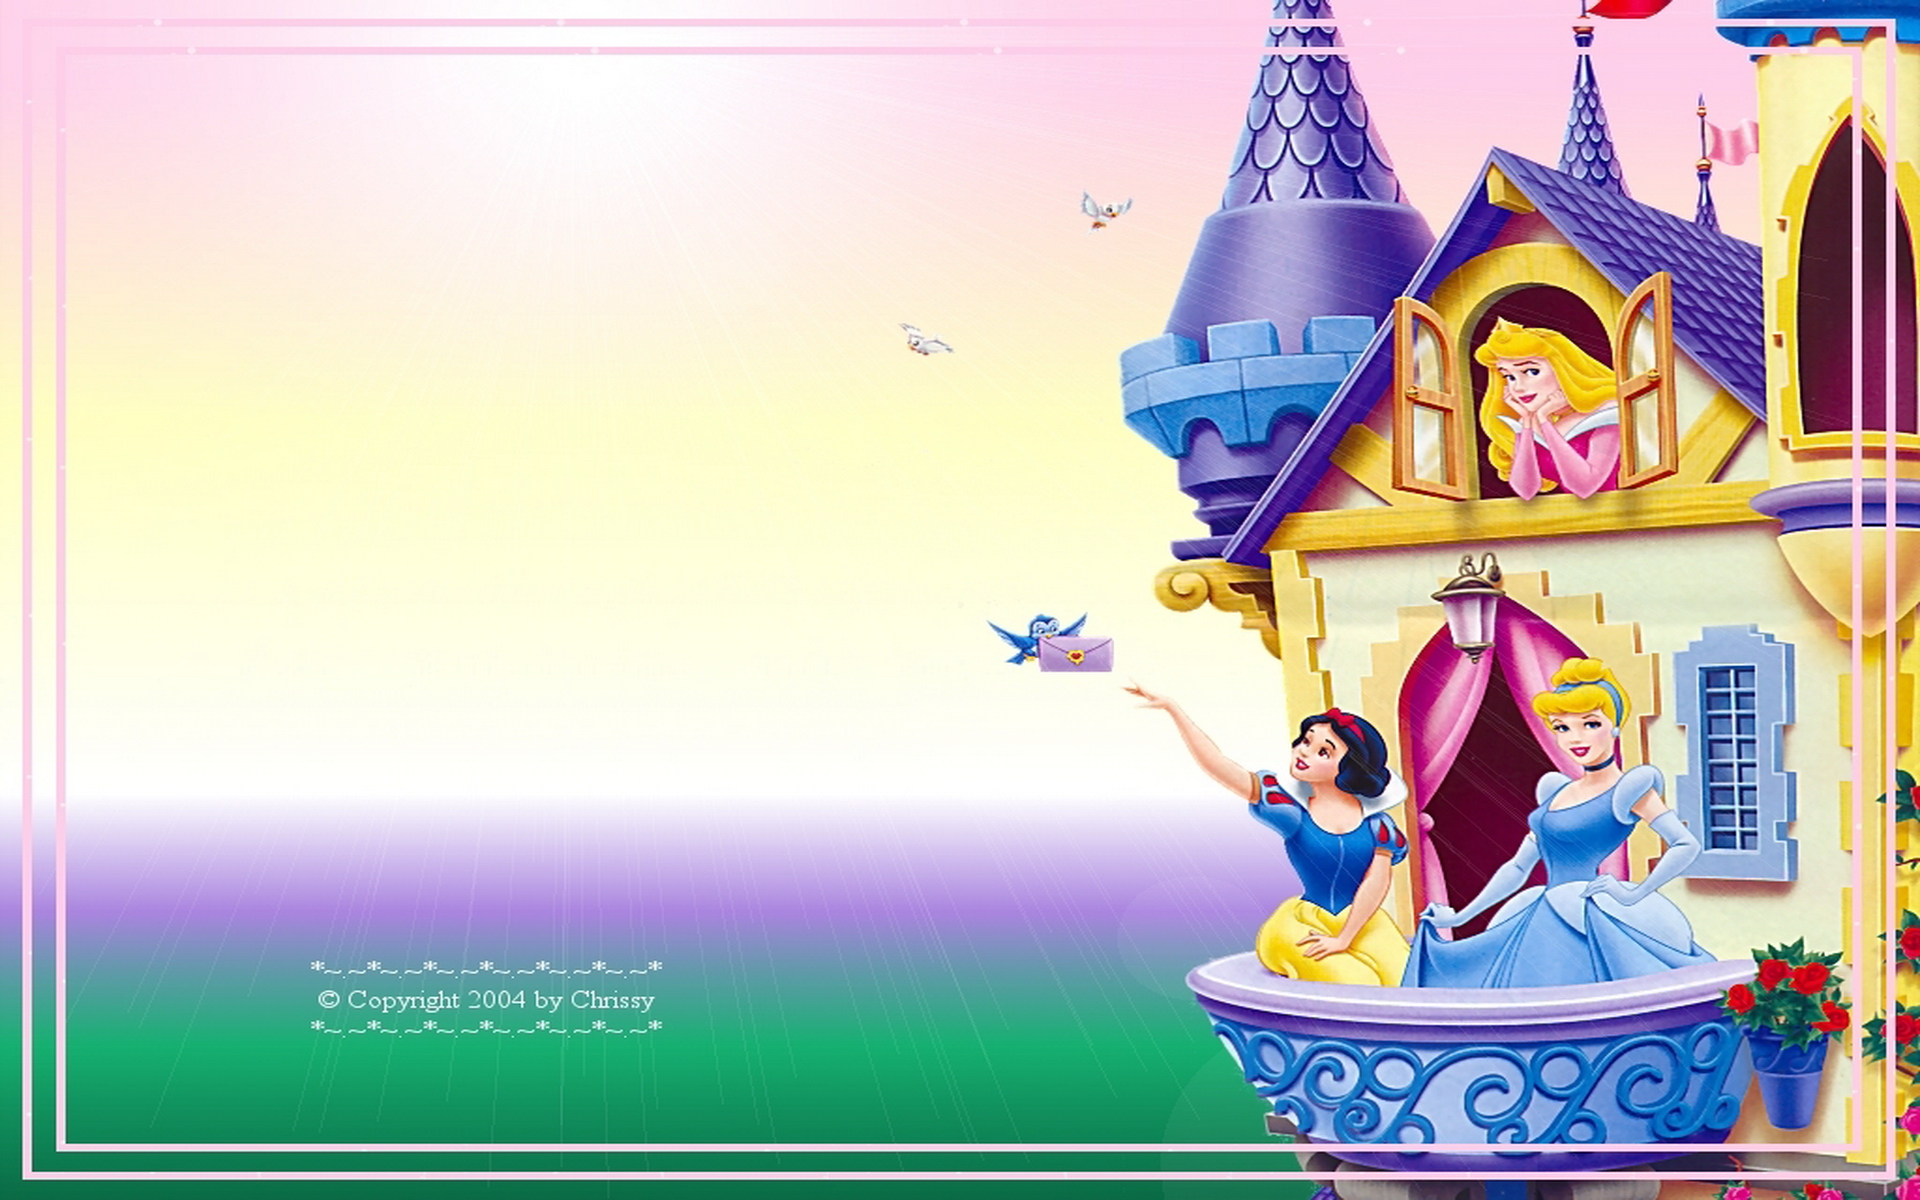 Disney Princess Wallpapers Desktop Wallpapers Sports 1920x1200